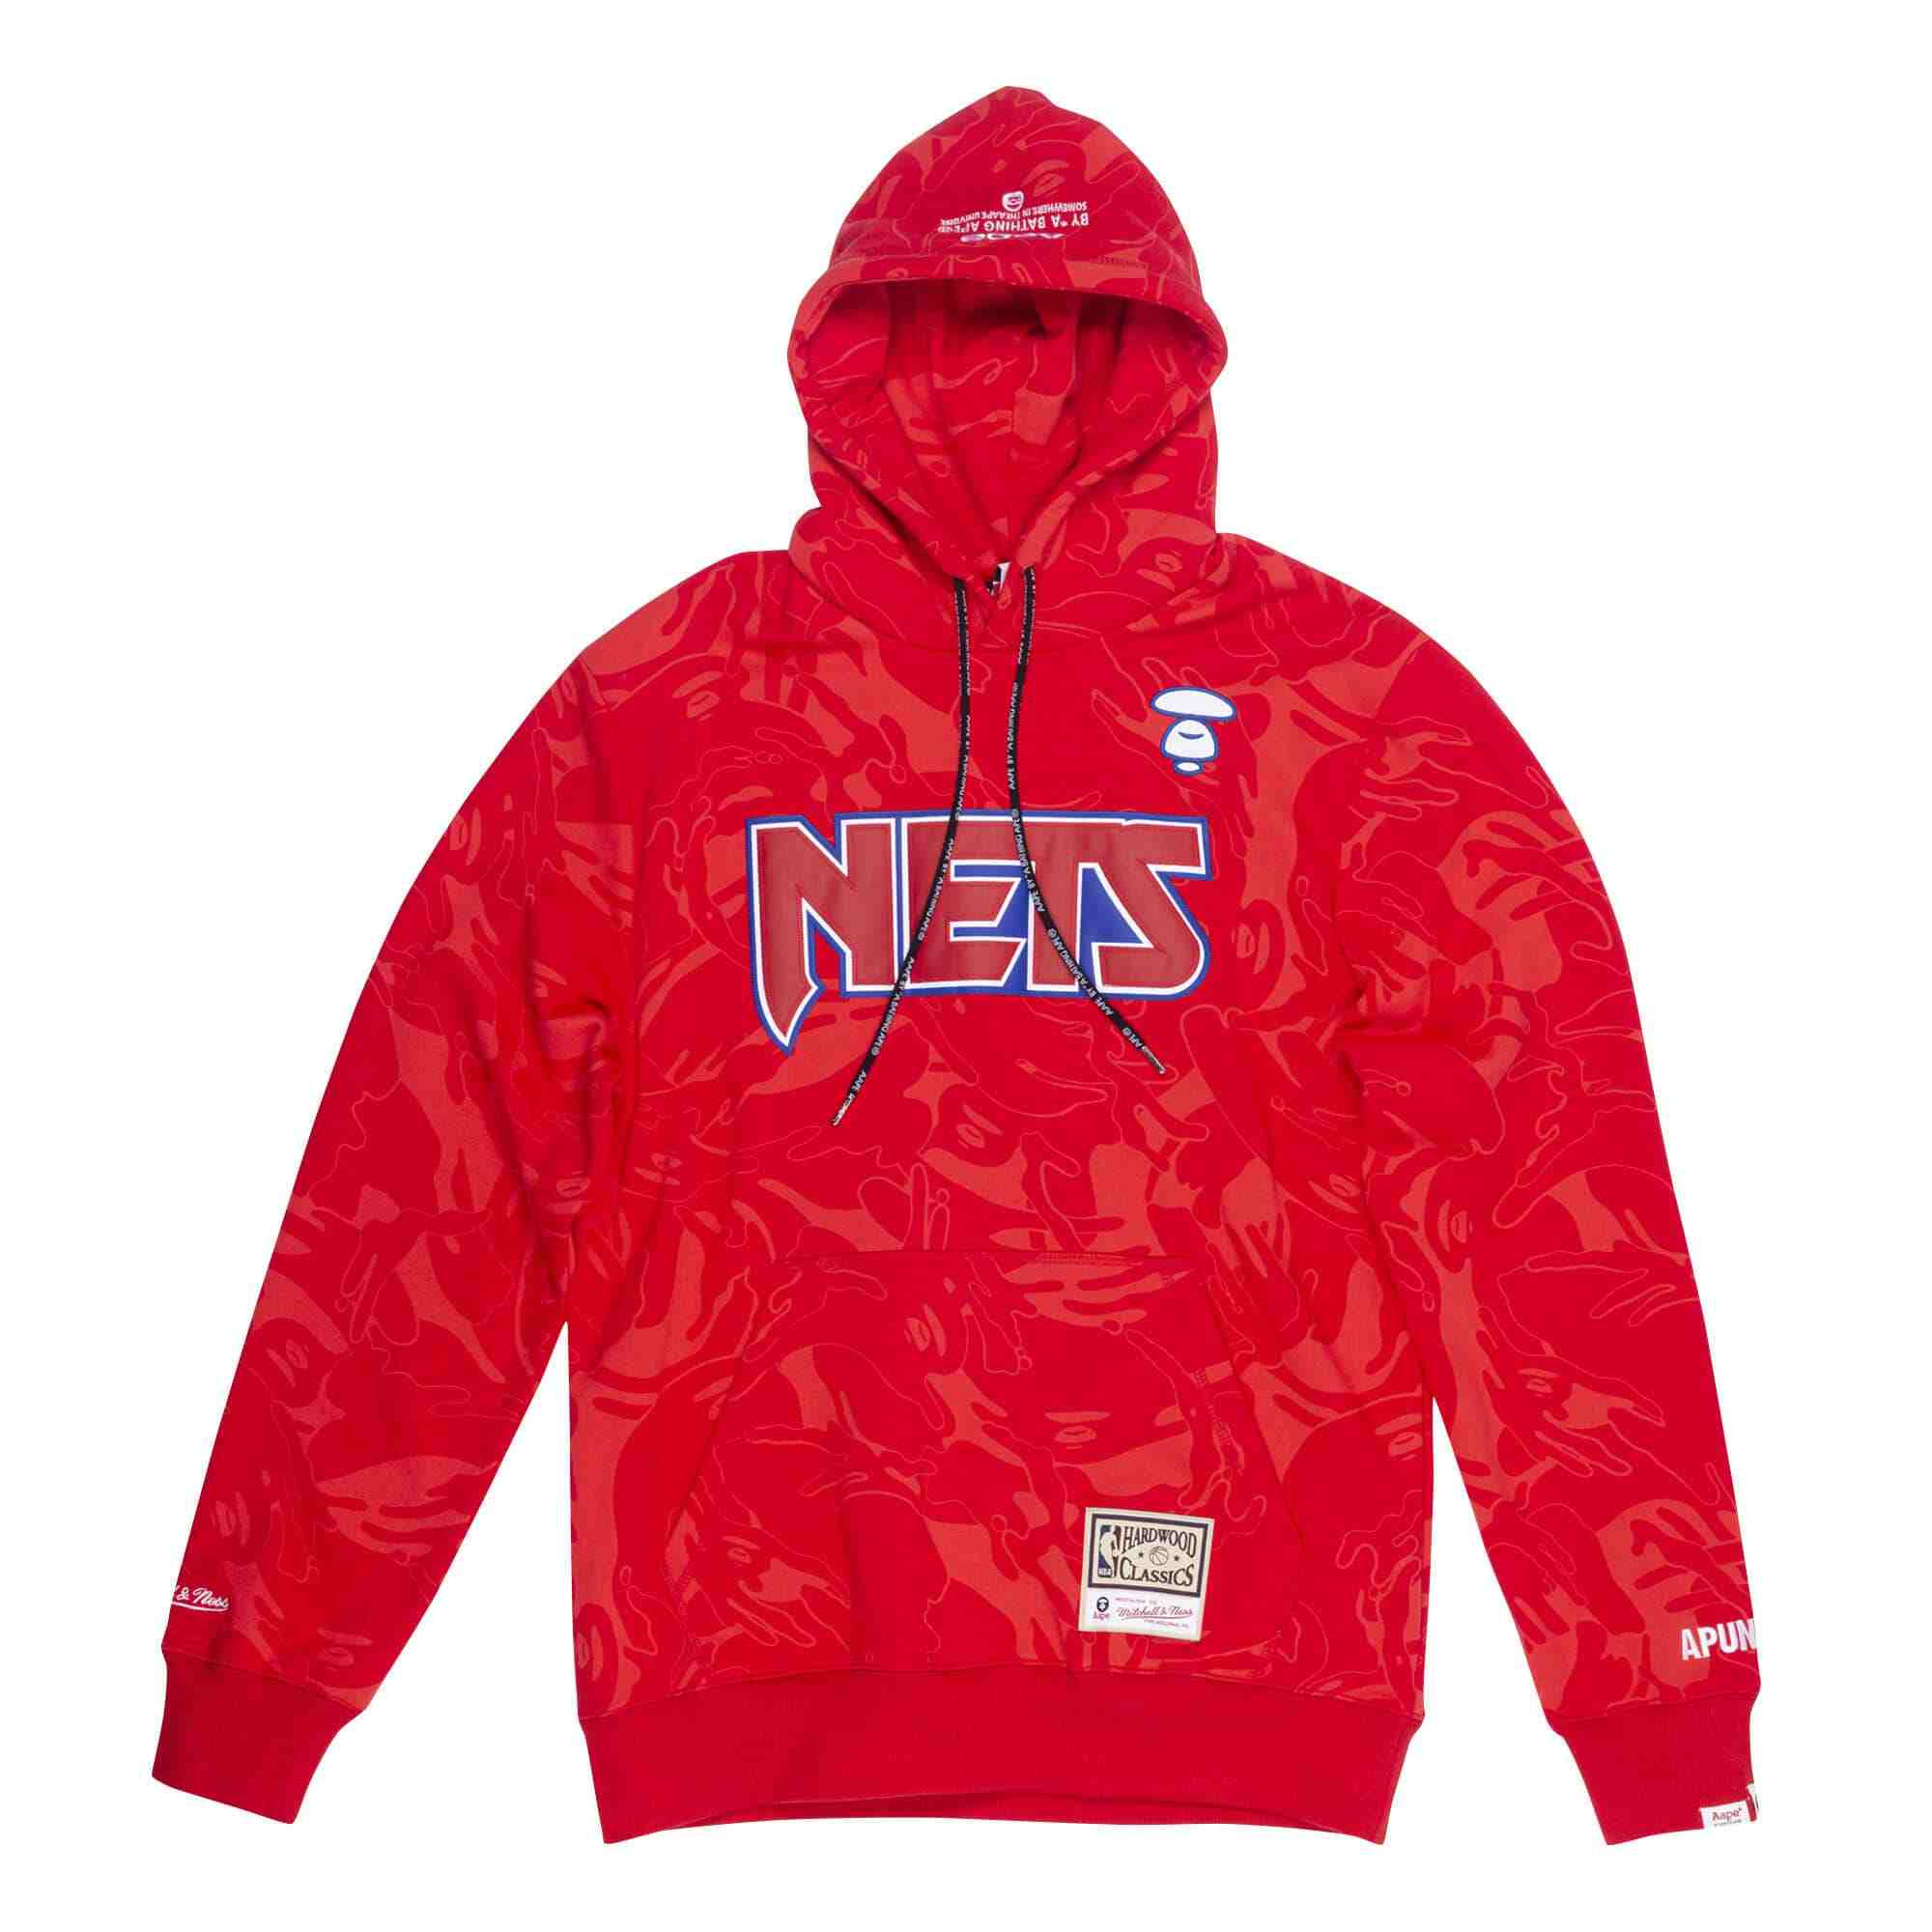 Aape x Mitchell Ness New Jersey Nets Hoodie Red